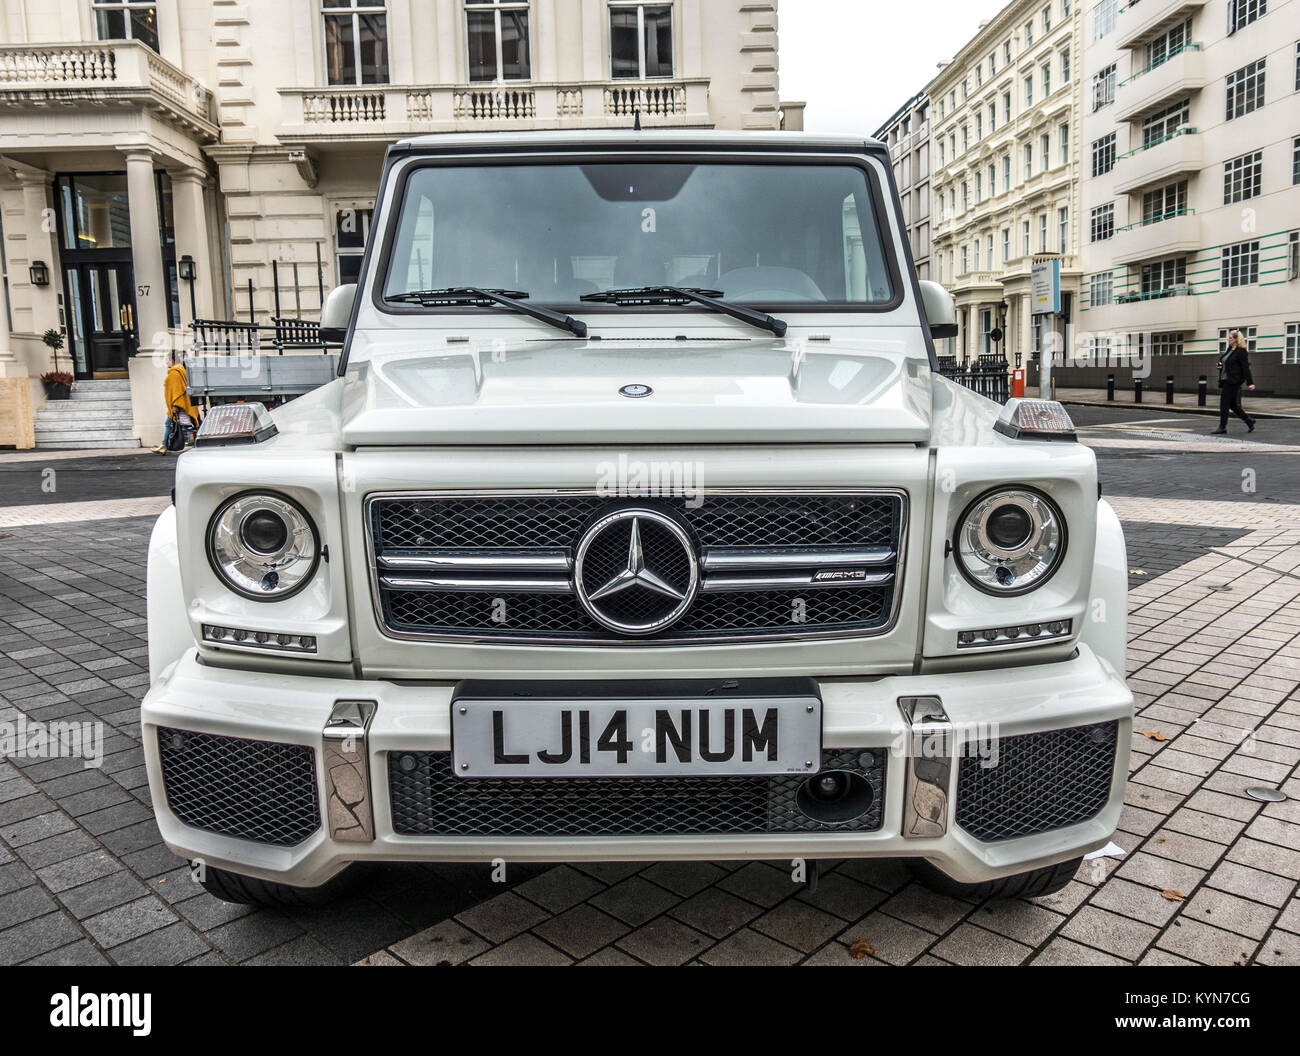 AMG Mercedes Benz G-class car in white, face-on view, parked in Exhibition Road, South Kensington, London, England, - Stock Image